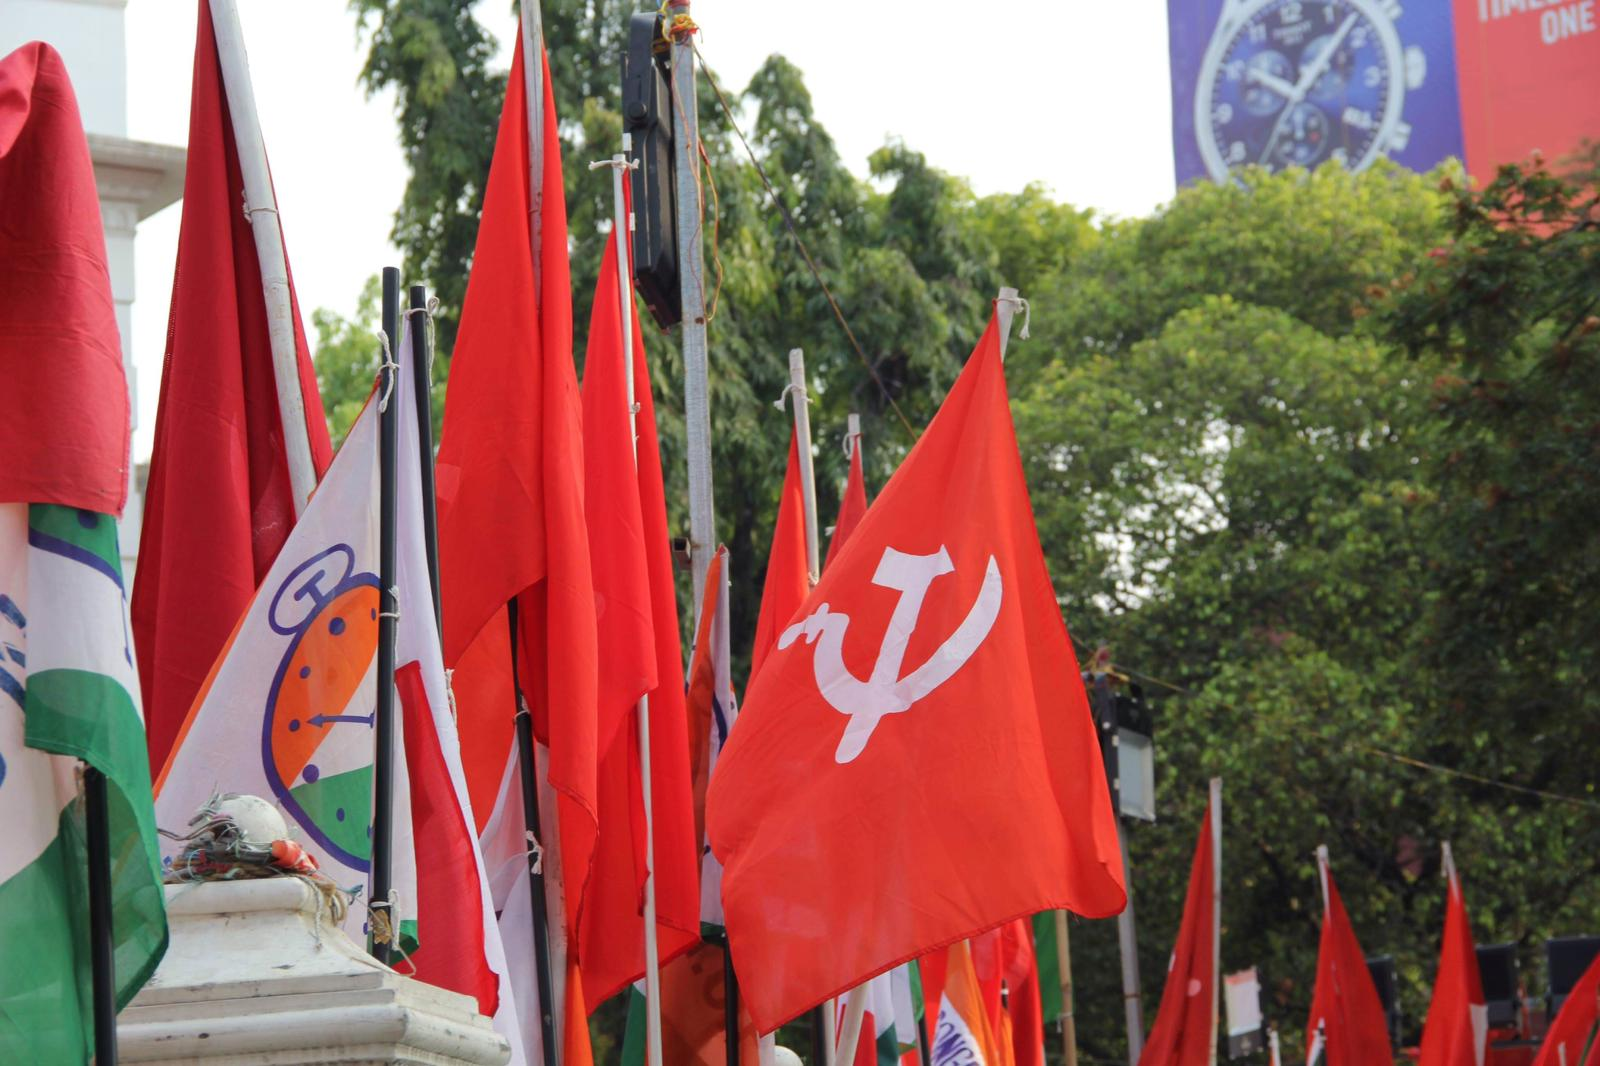 The Communist Party of India (Marxist) leads Kerala's state legislature / Photo by Diana Kruzman